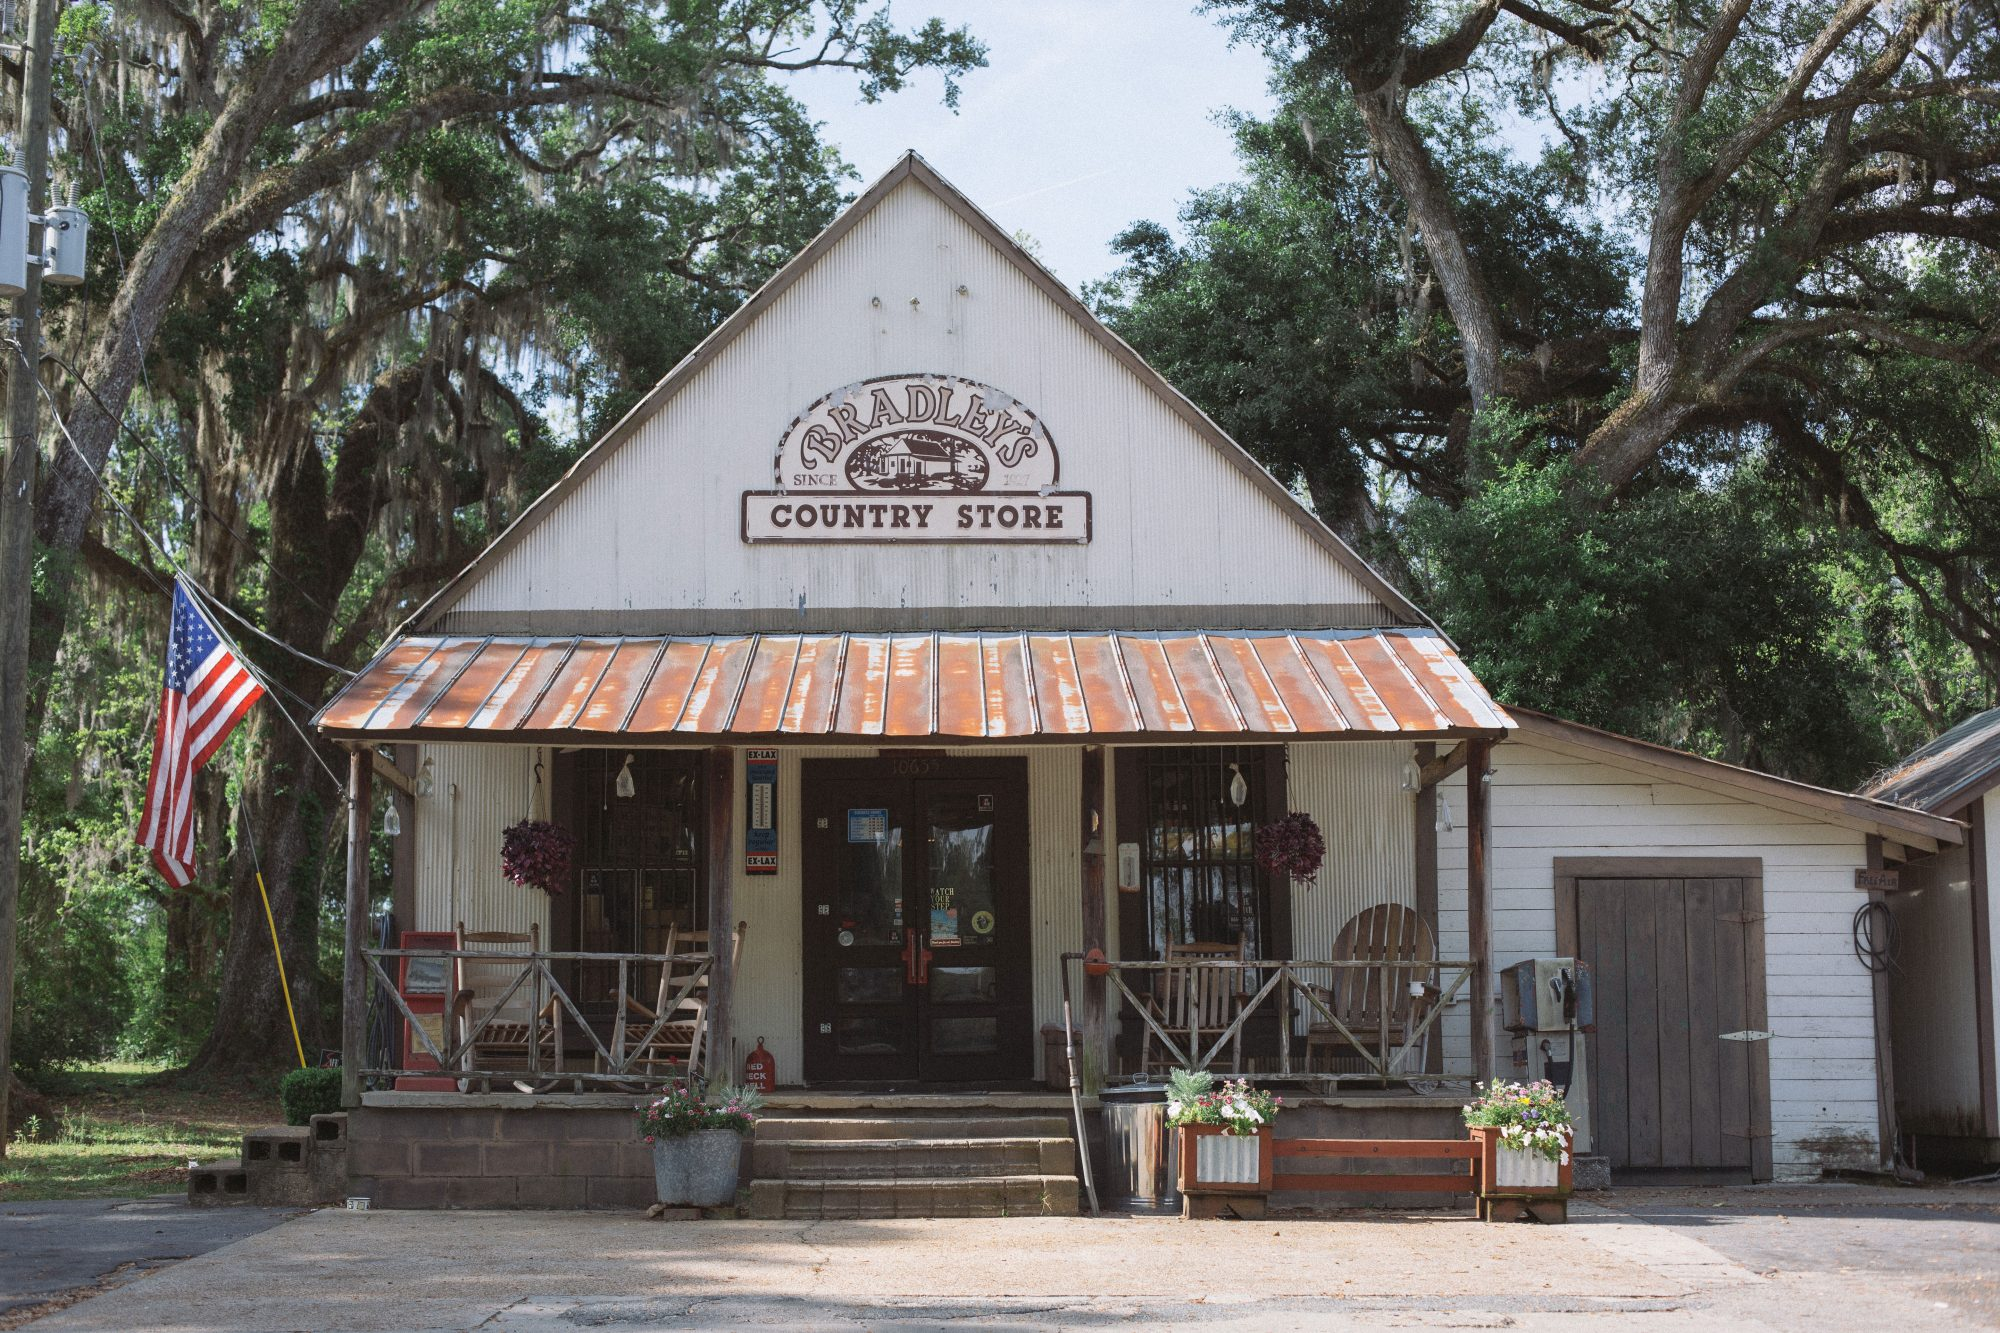 Bradley's Country Store Exterior